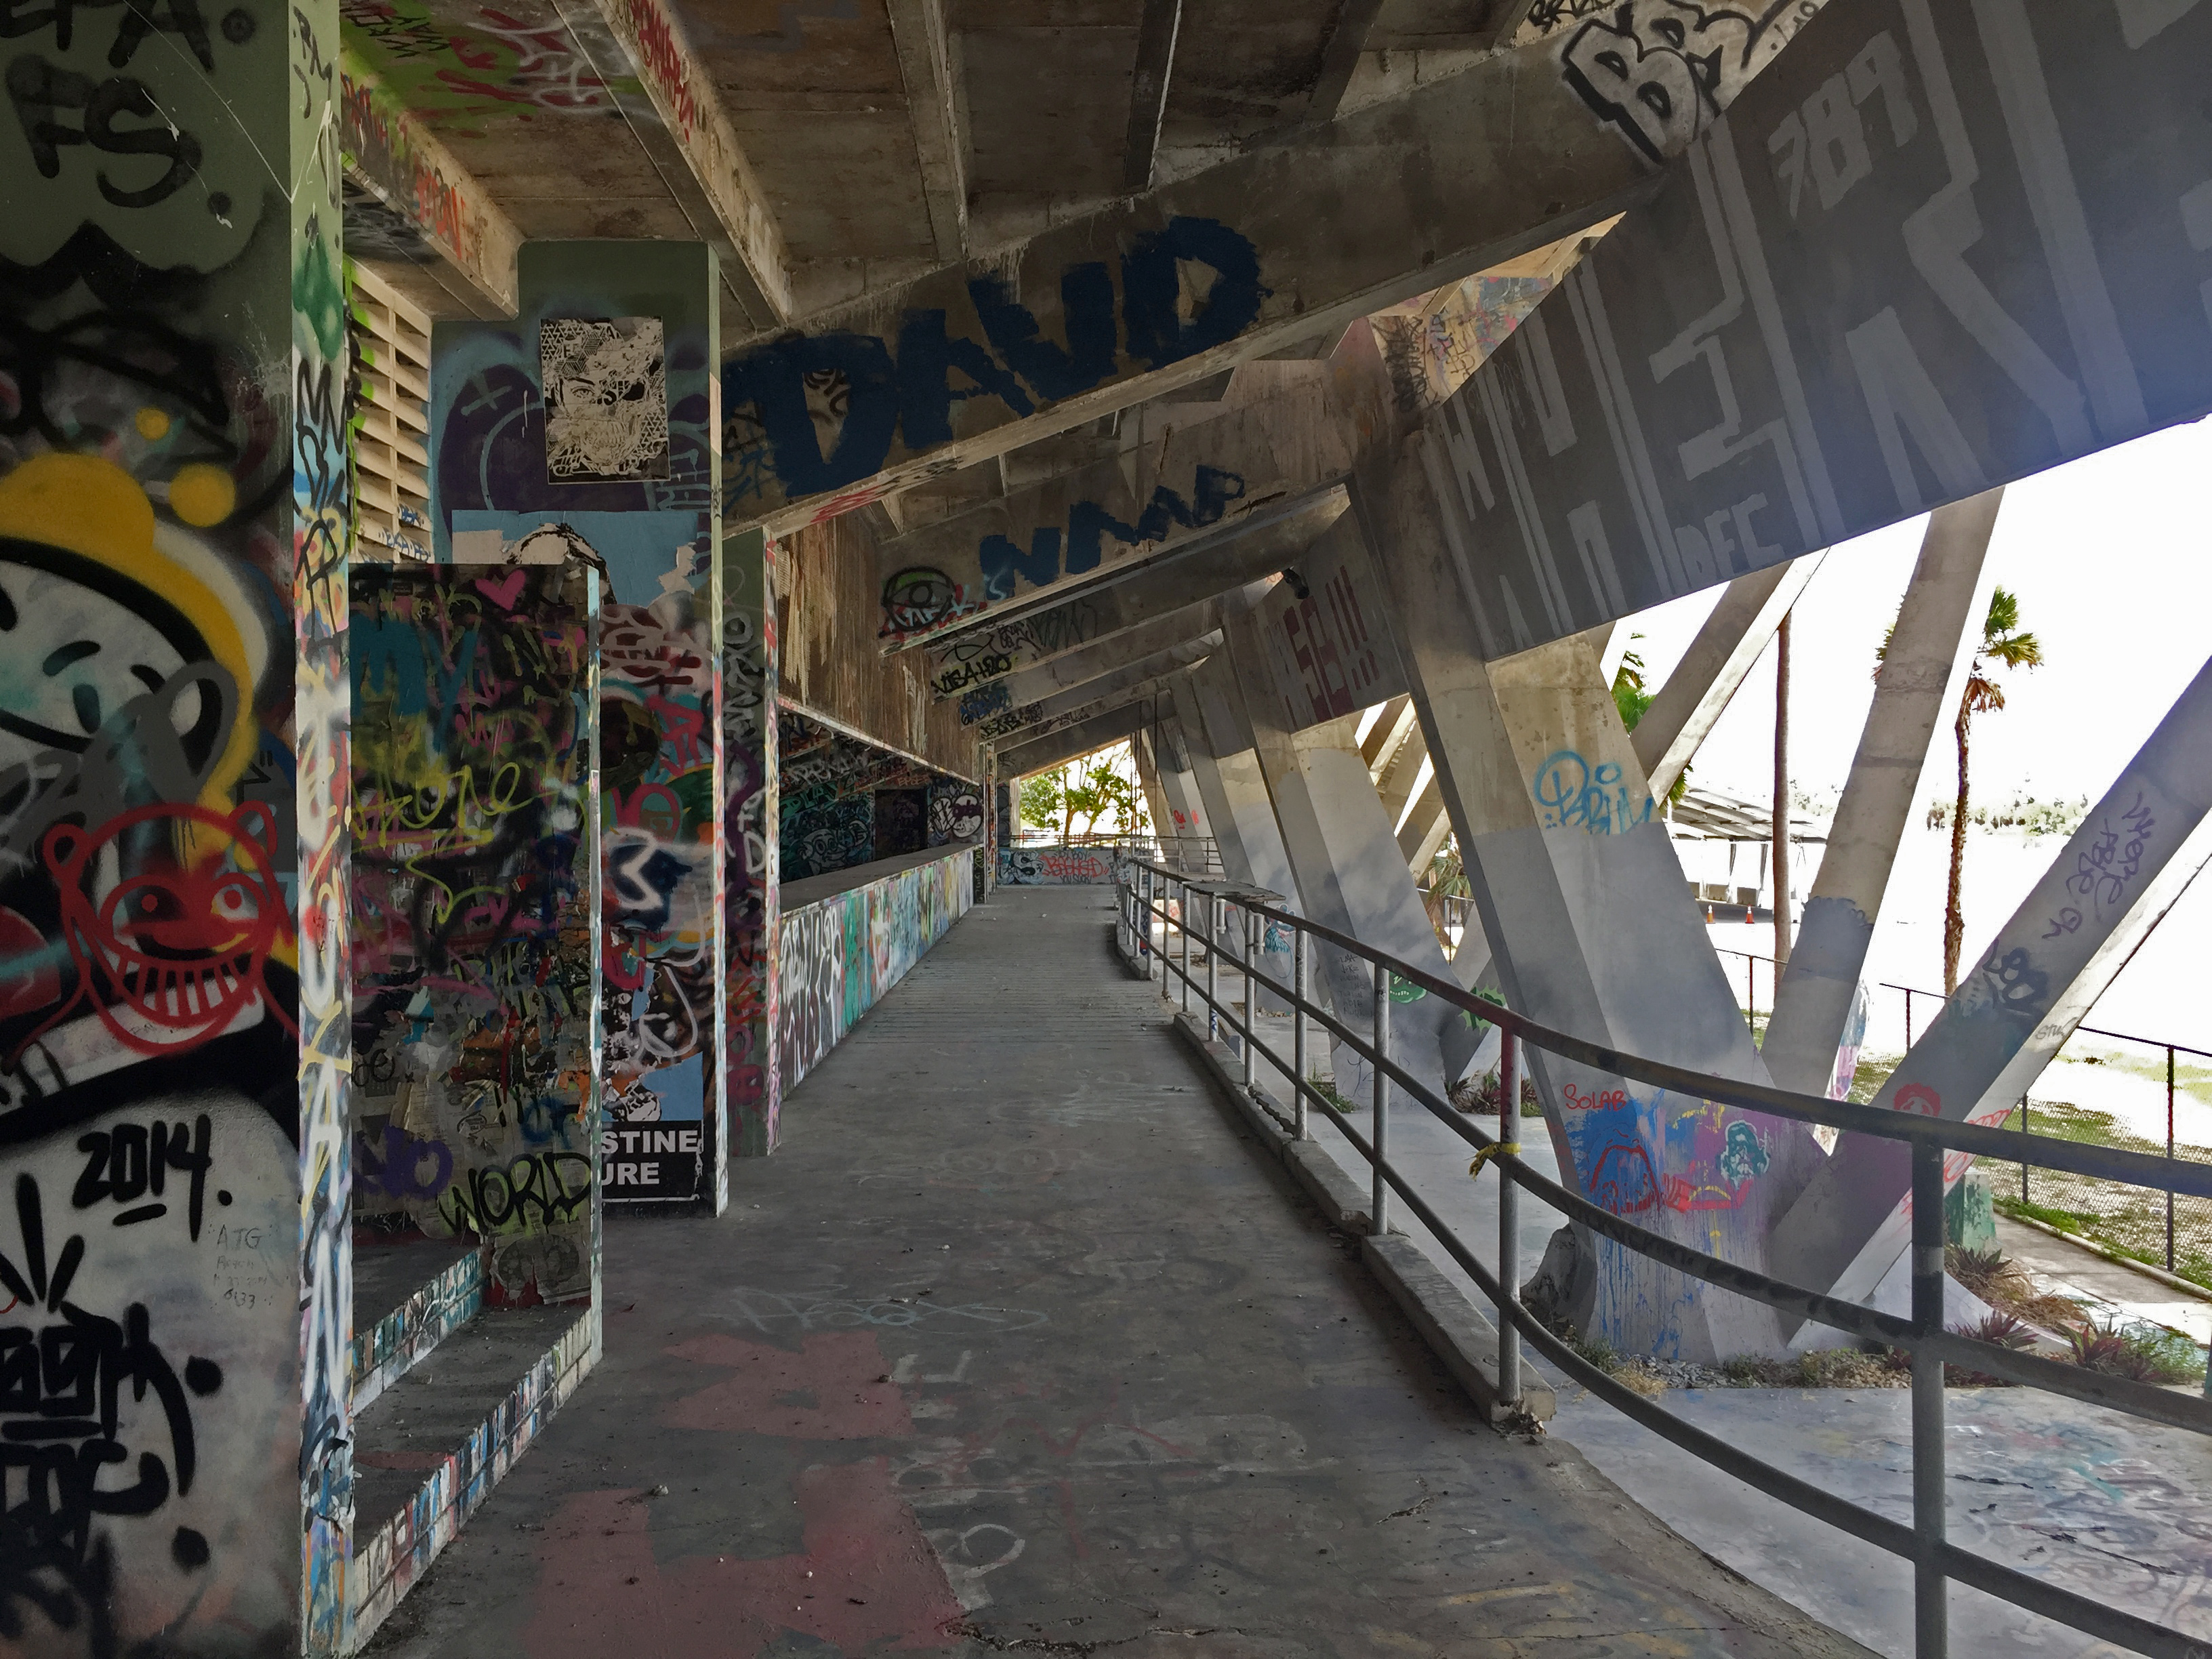 The graffiti-covered walkway underneath the grandstand.